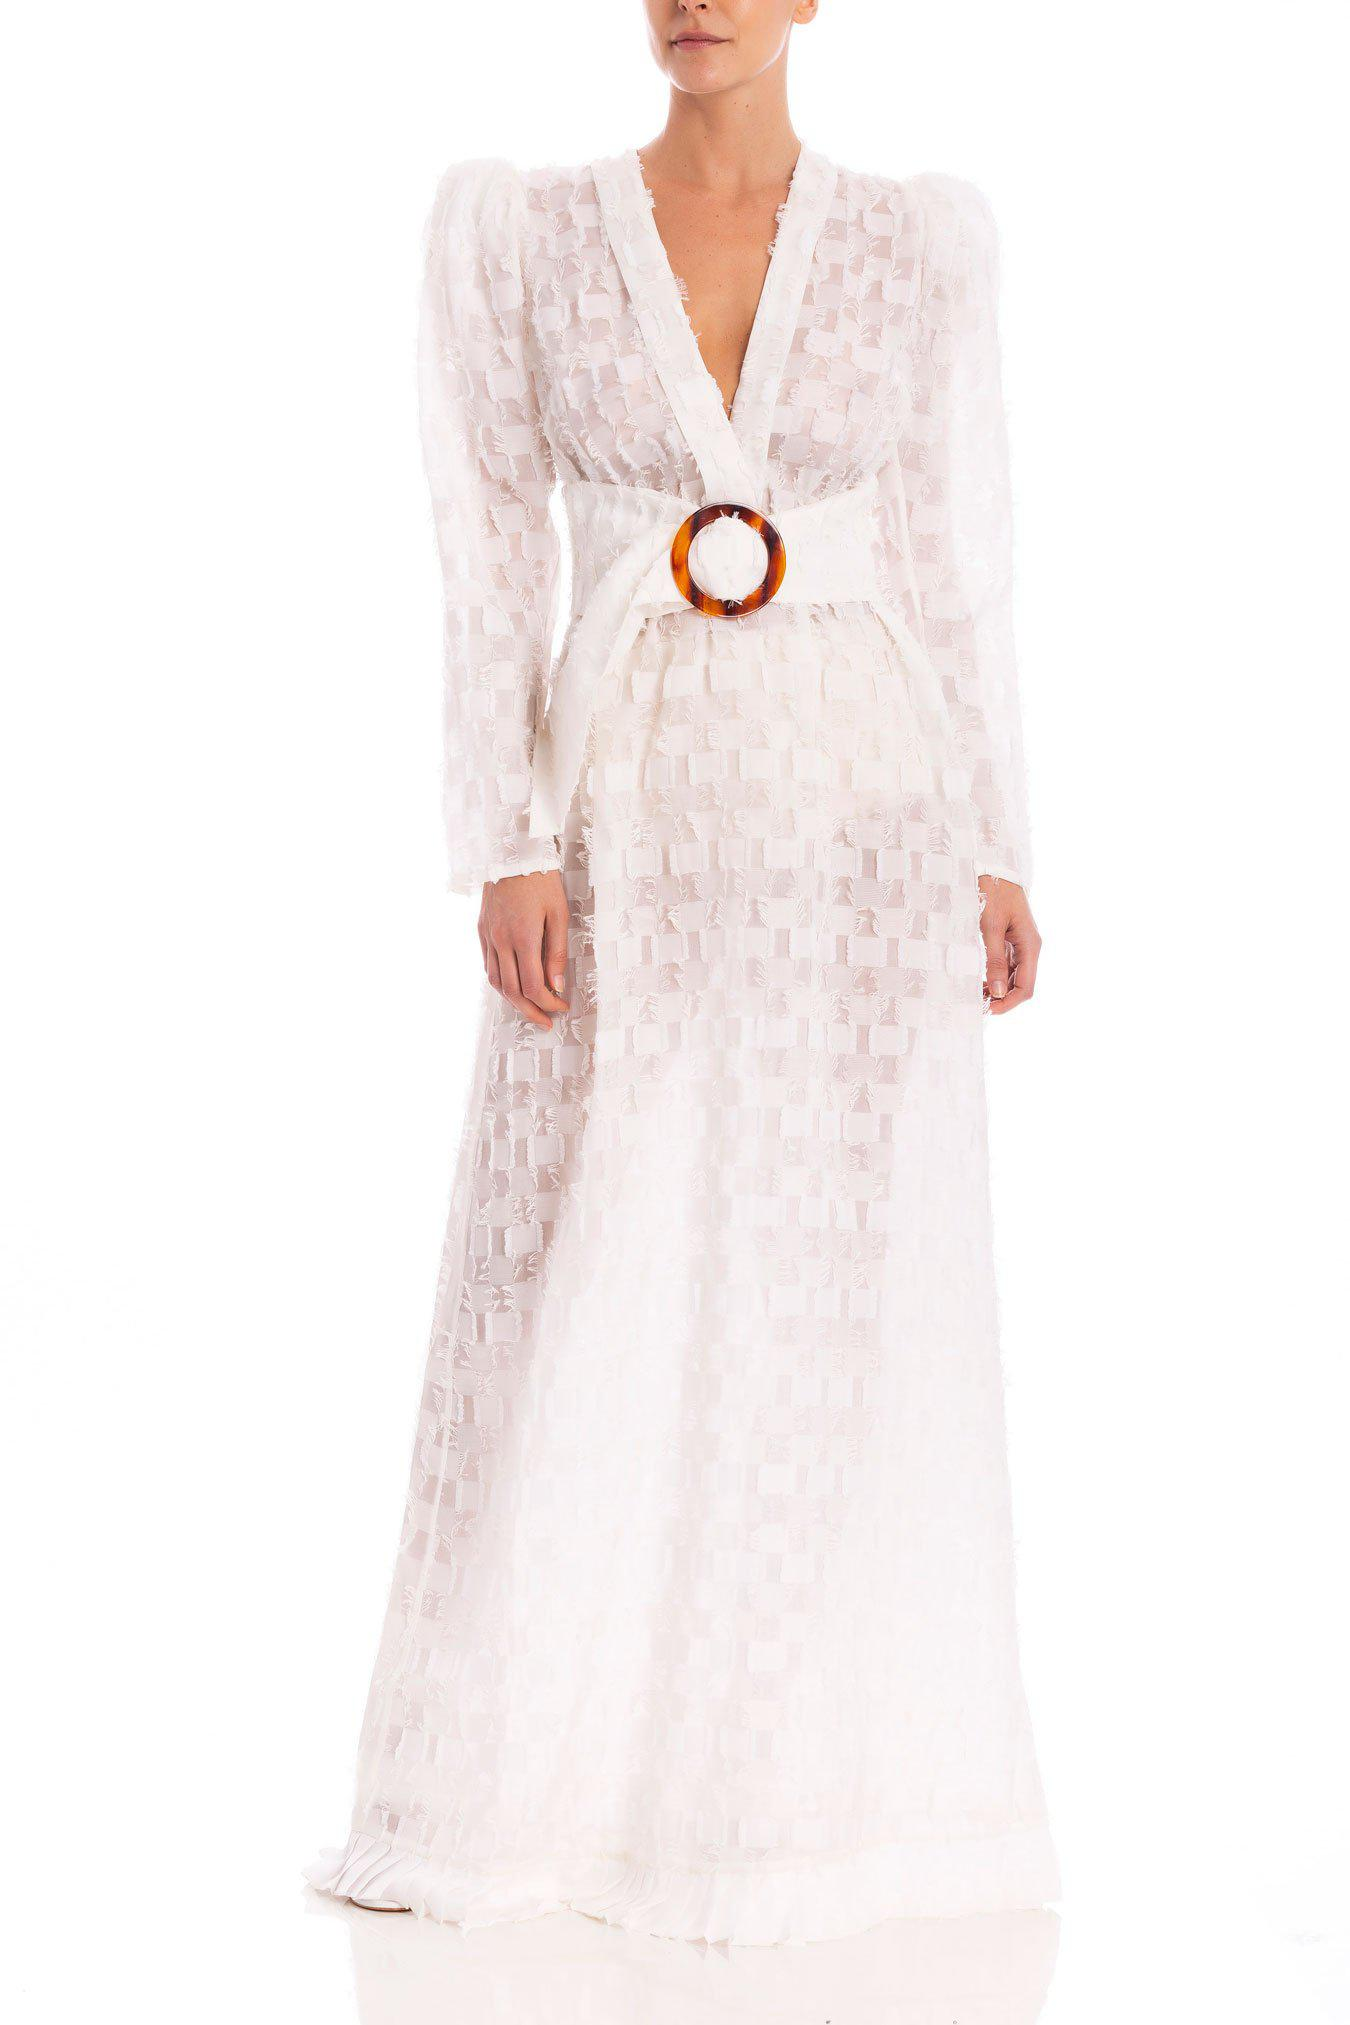 New Year Long Dress with Voluminous Sleeves and Hoop